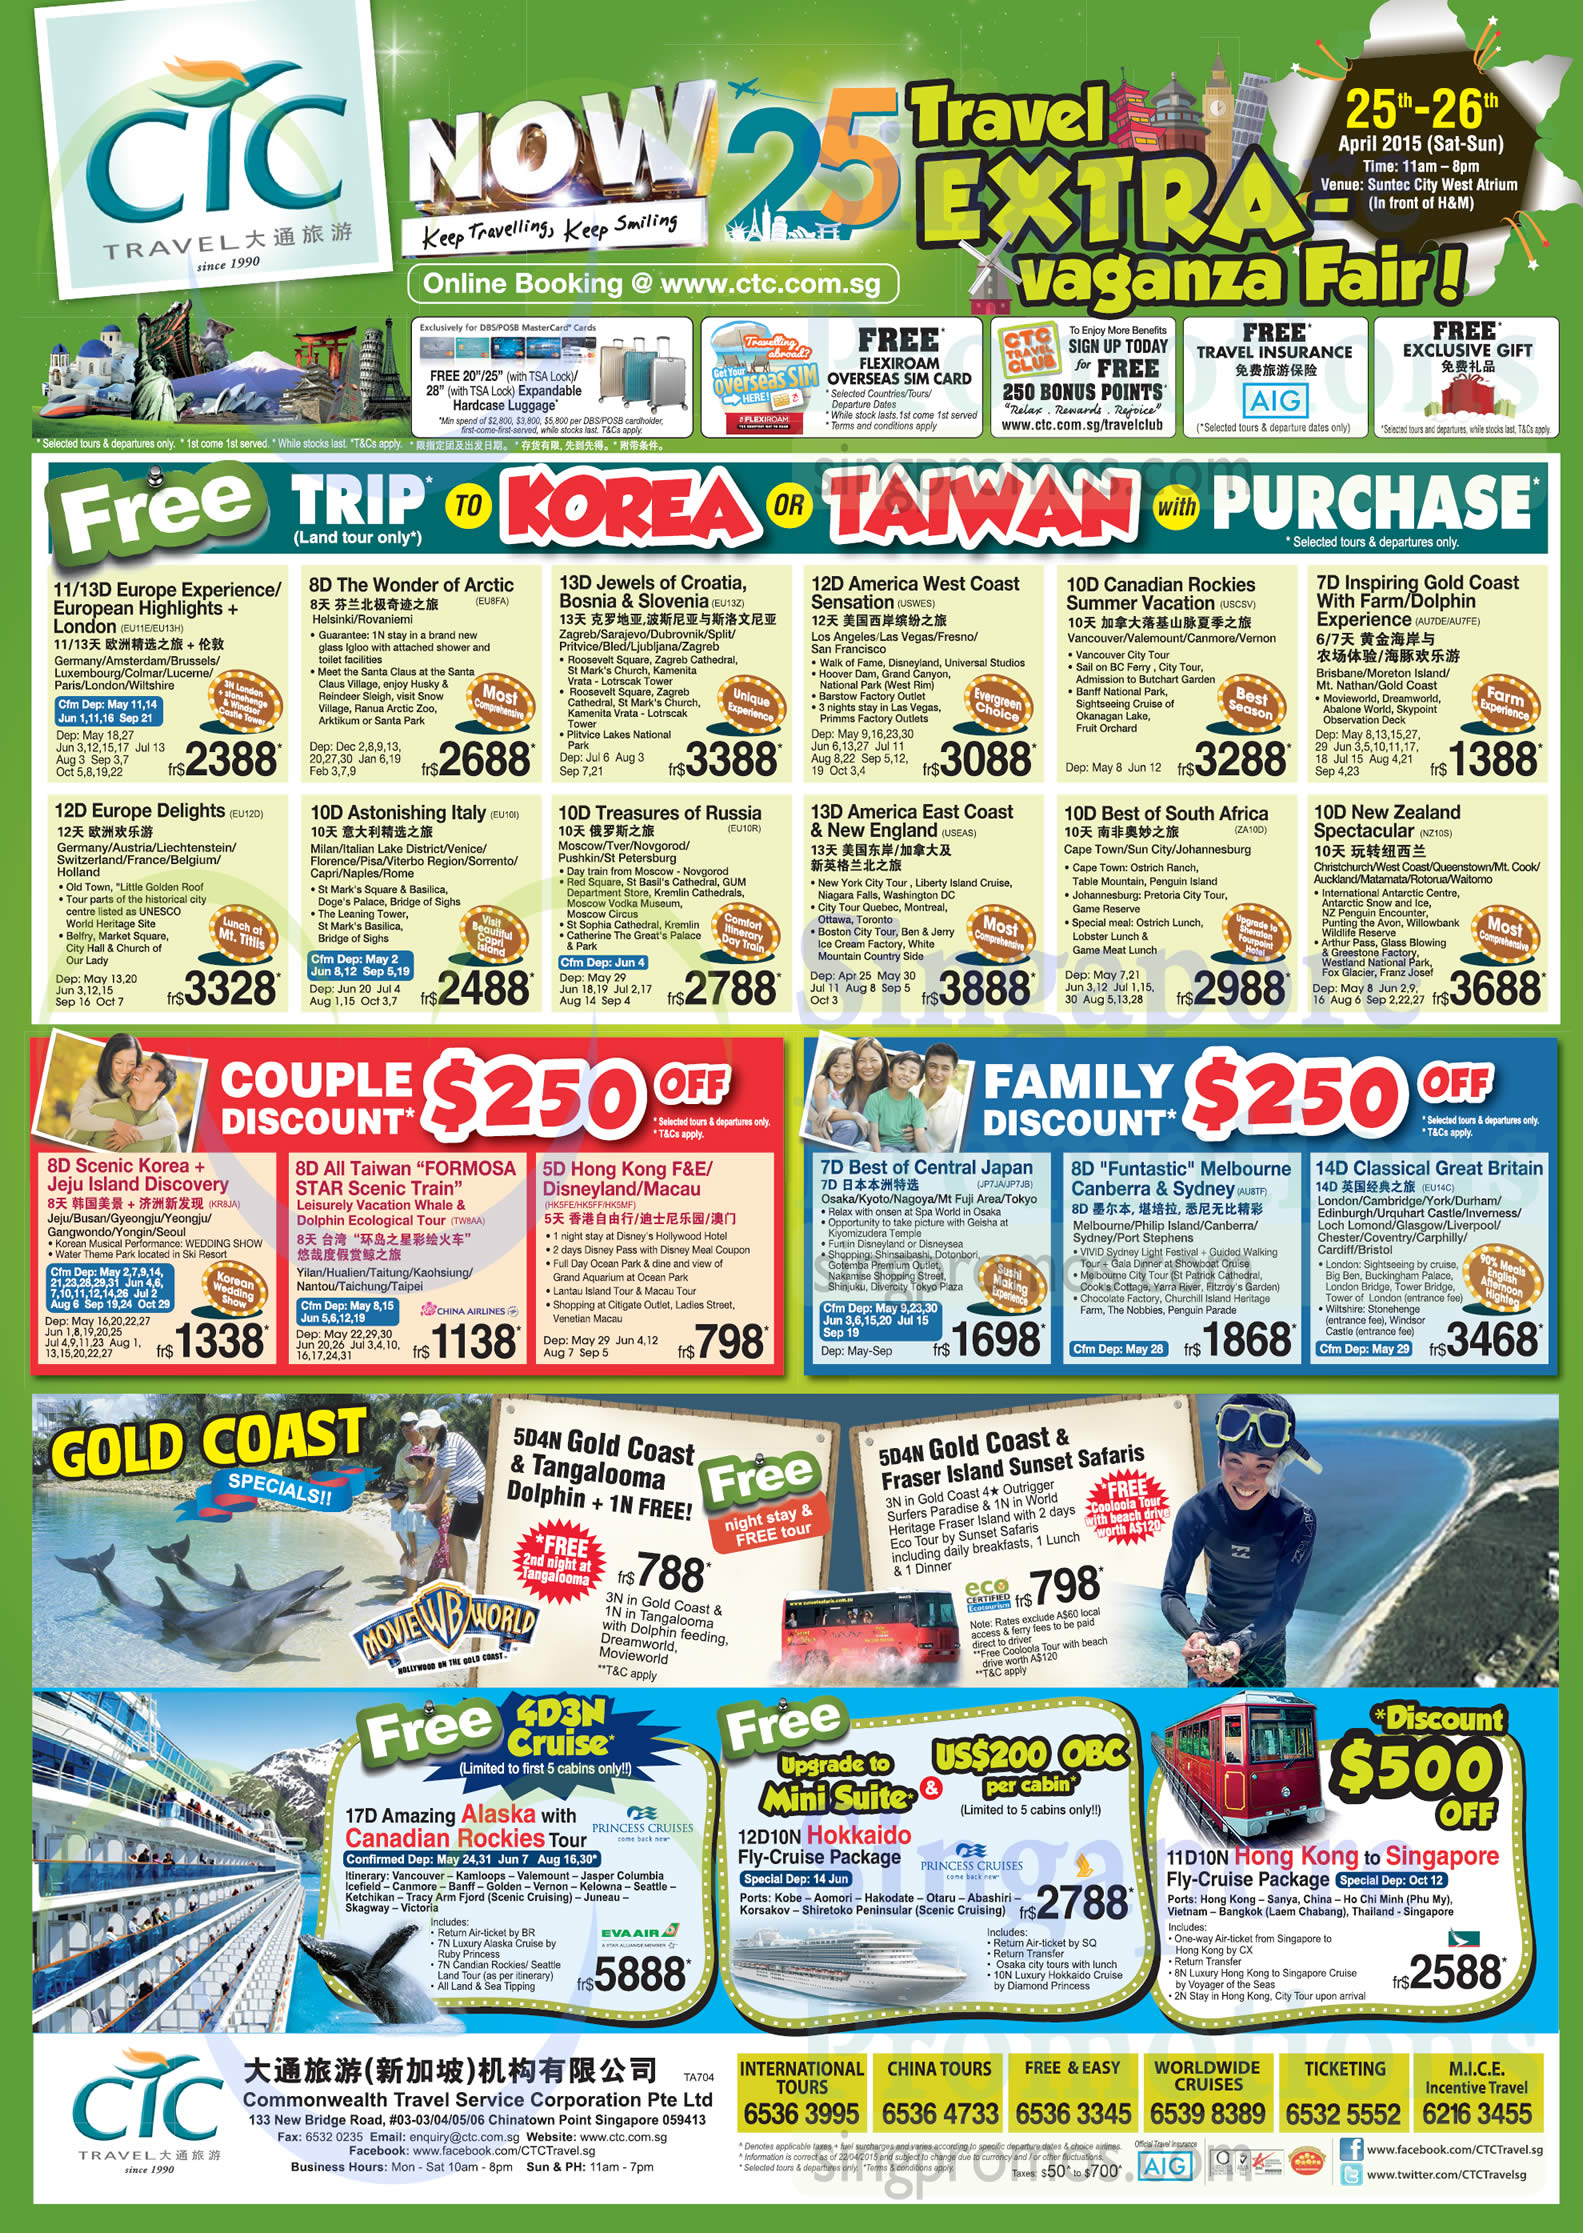 Tour Packages, Couple, Family Discount, Korea, Taiwan Gold Coast, South Africa, Italy, Europe, America, Canada, Japan, Britain, Taiwan, Hong Kong